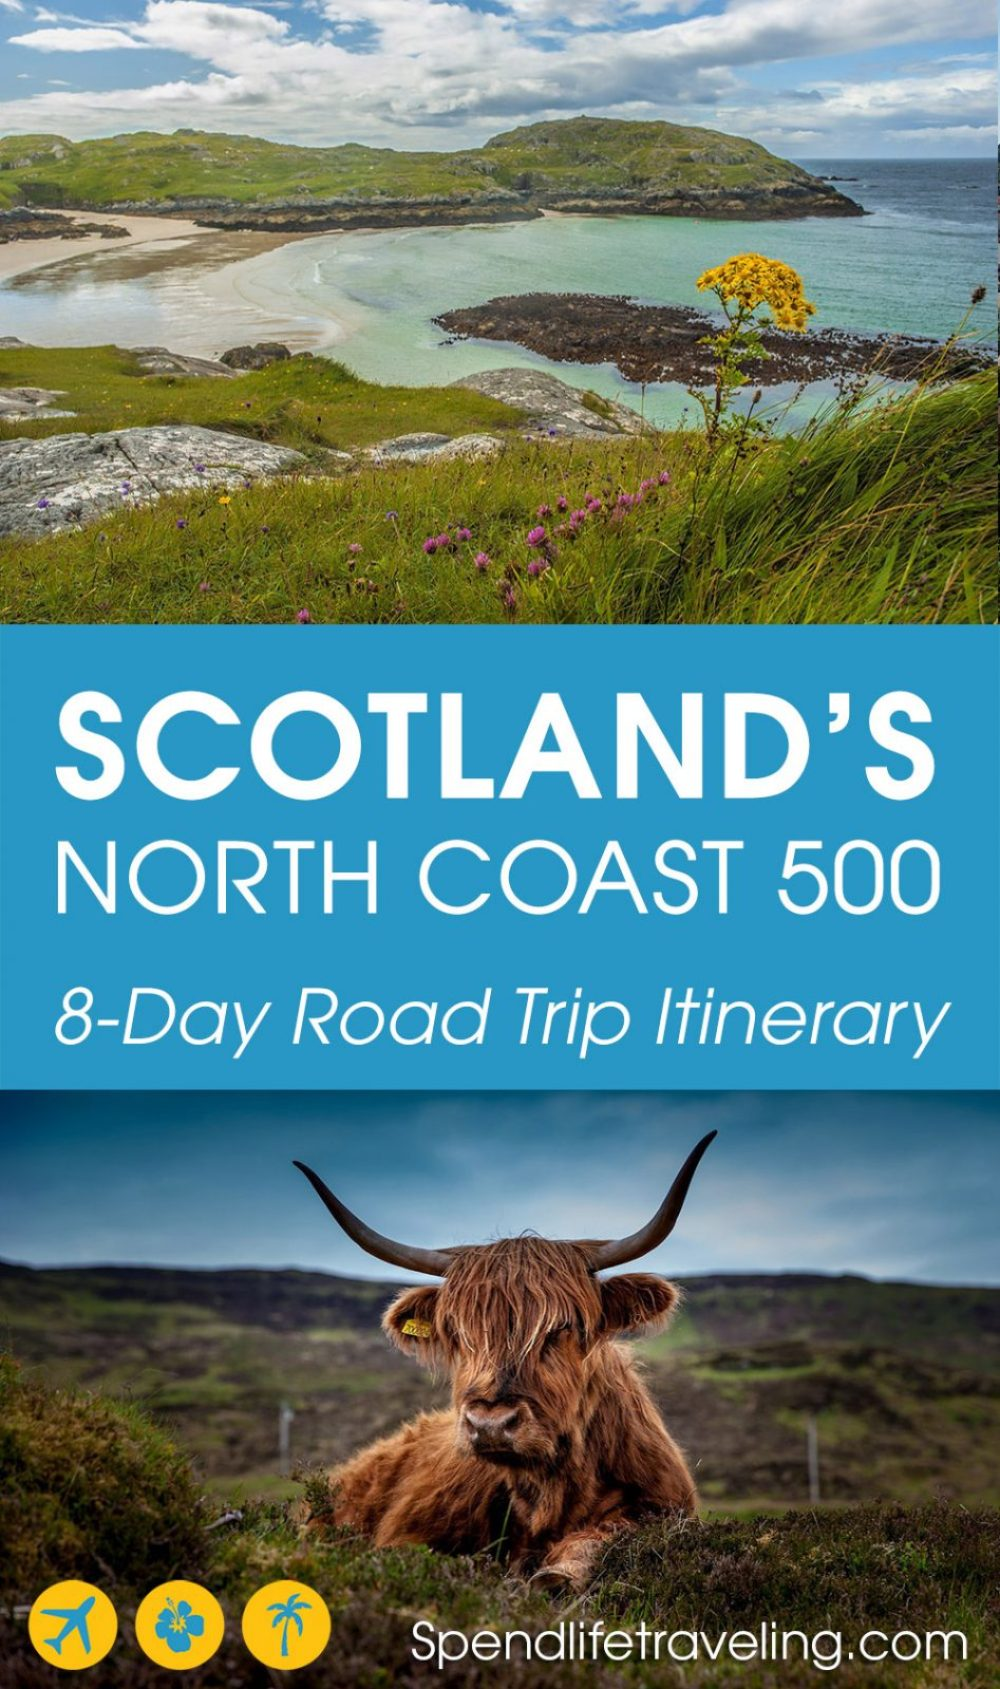 If you are looking for an incredible road trip with amazing scenery, historic castles and cute coastal towns, then add Scotland's North Coast 500 to your bucket list! #roadtrip #scotland #northcoast500 #NC500 #highlands